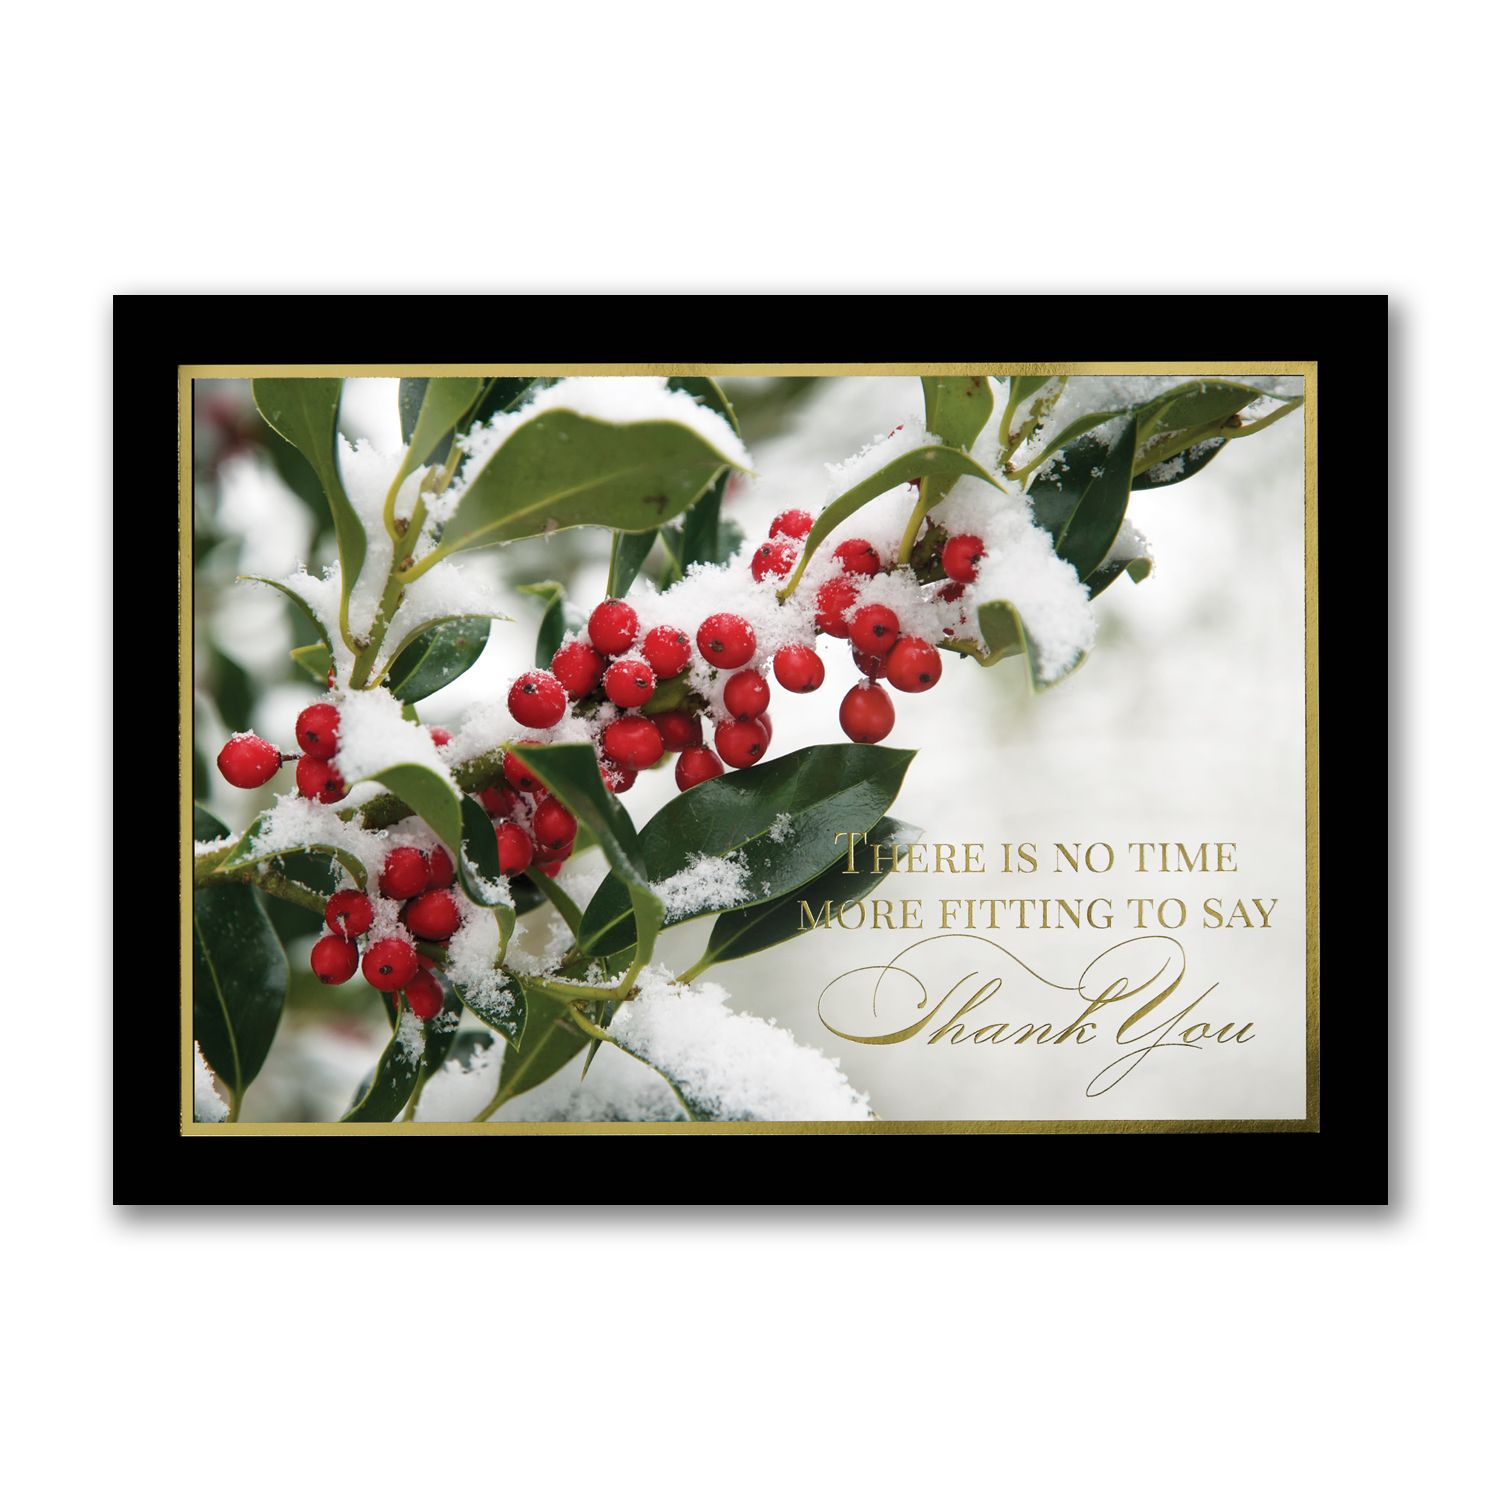 Winter appreciation nature business christmas cards http winter appreciation nature business christmas cards httppartyblockrlsoncraftholidayseasons greetings cards ym ymm1348 winter appreciati reheart Choice Image